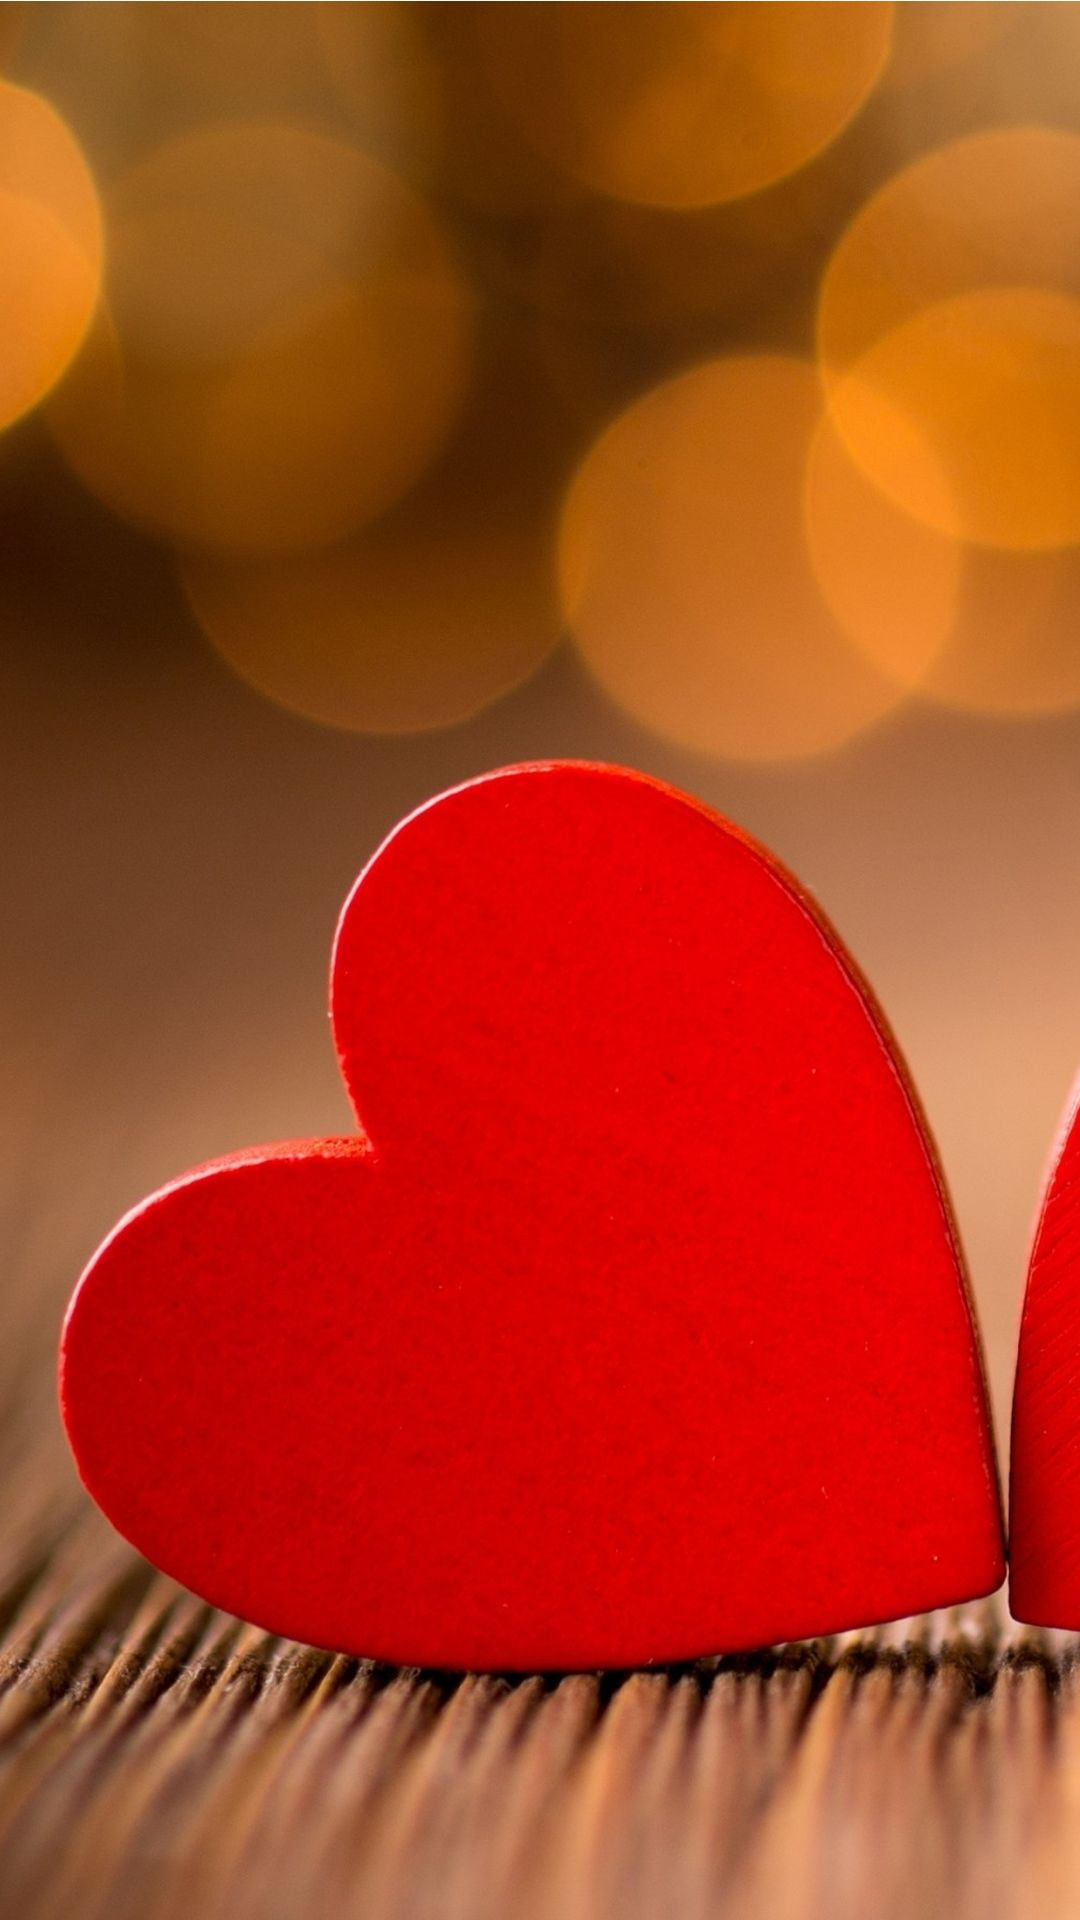 Cute Love Wallpapers For Android